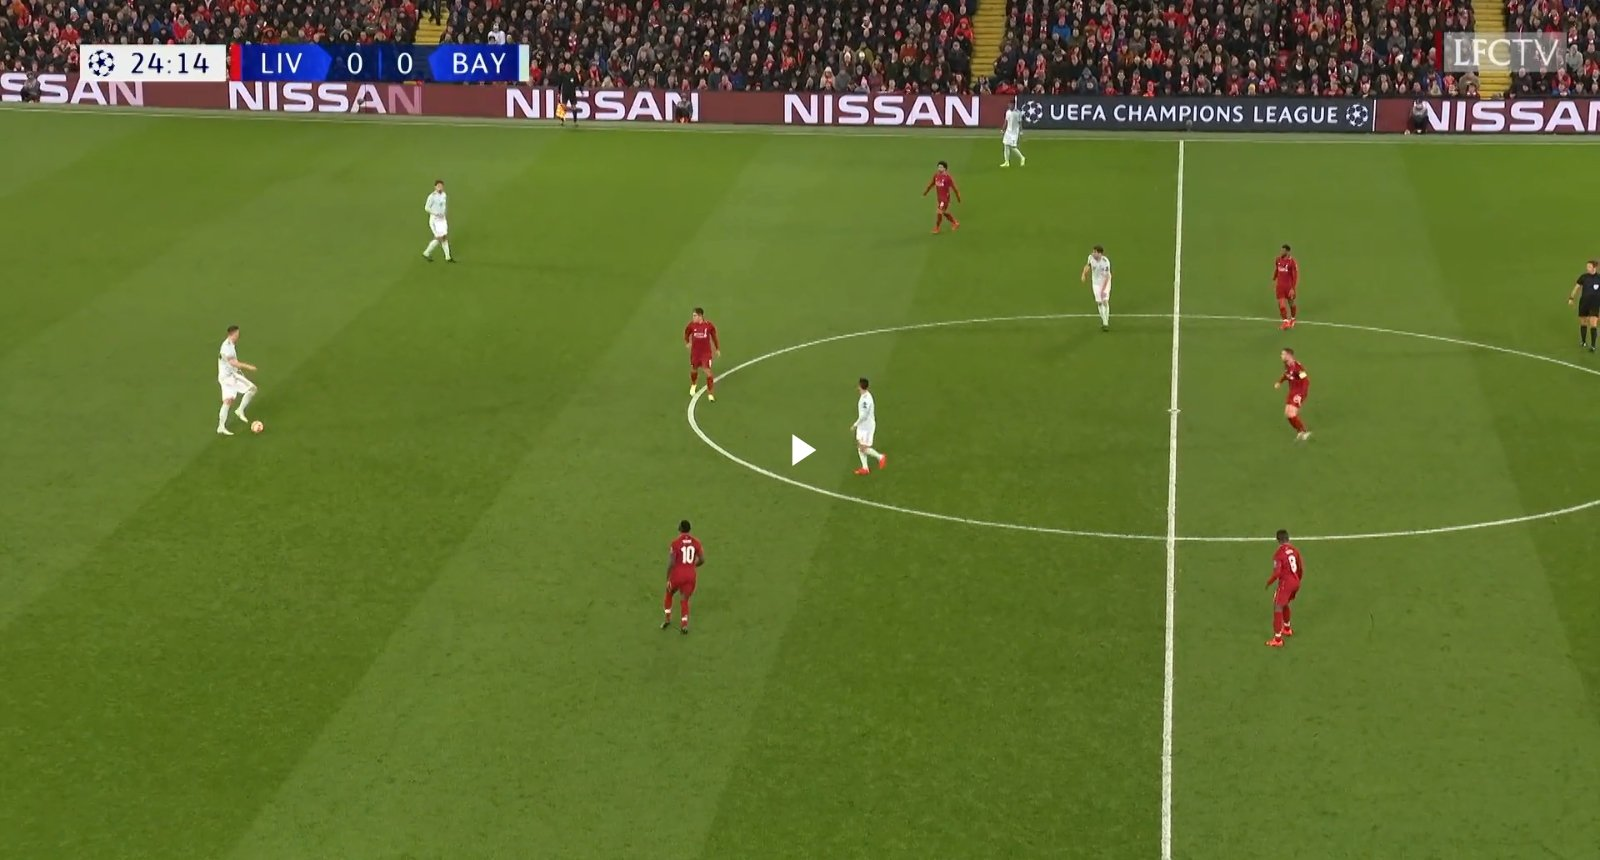 Liverpool's front and midfield 3 in their most basic positions in 4-3-3, a formation Jurgen Klopp has deployed since his first season. (Image Credits: @LFC TV on YouTube via Breaking the Lines)